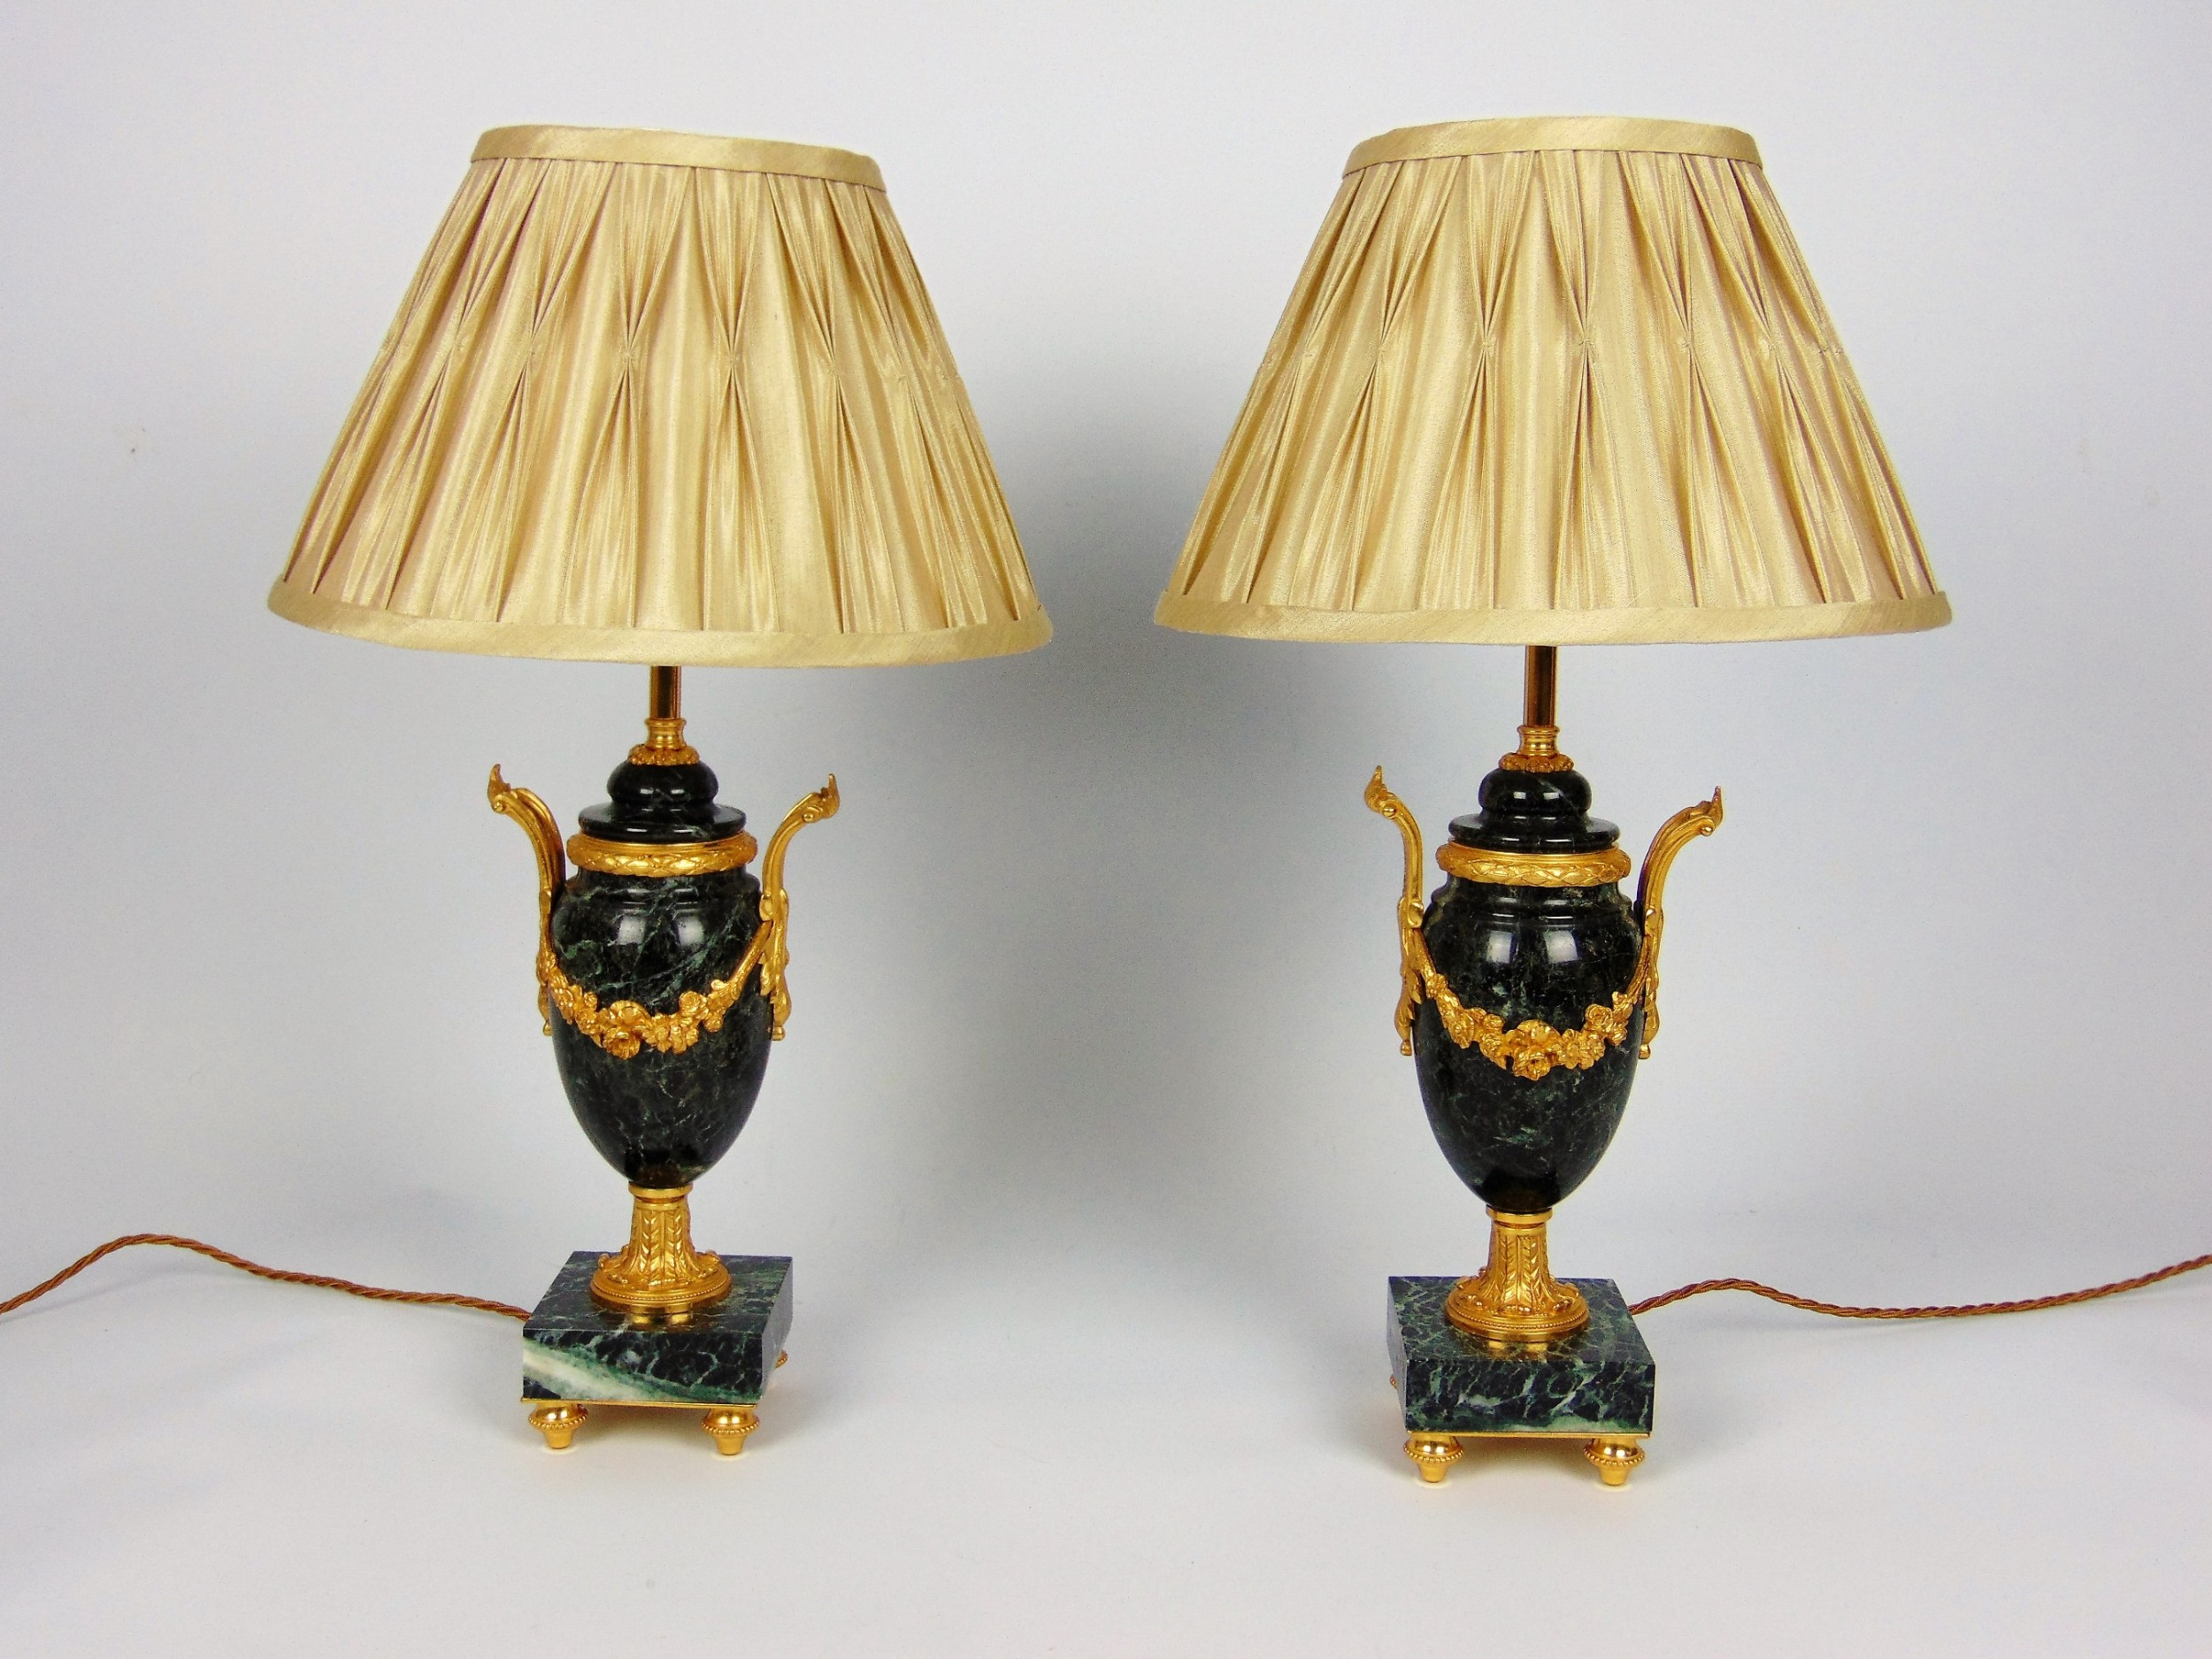 a fine pair of marble lamps